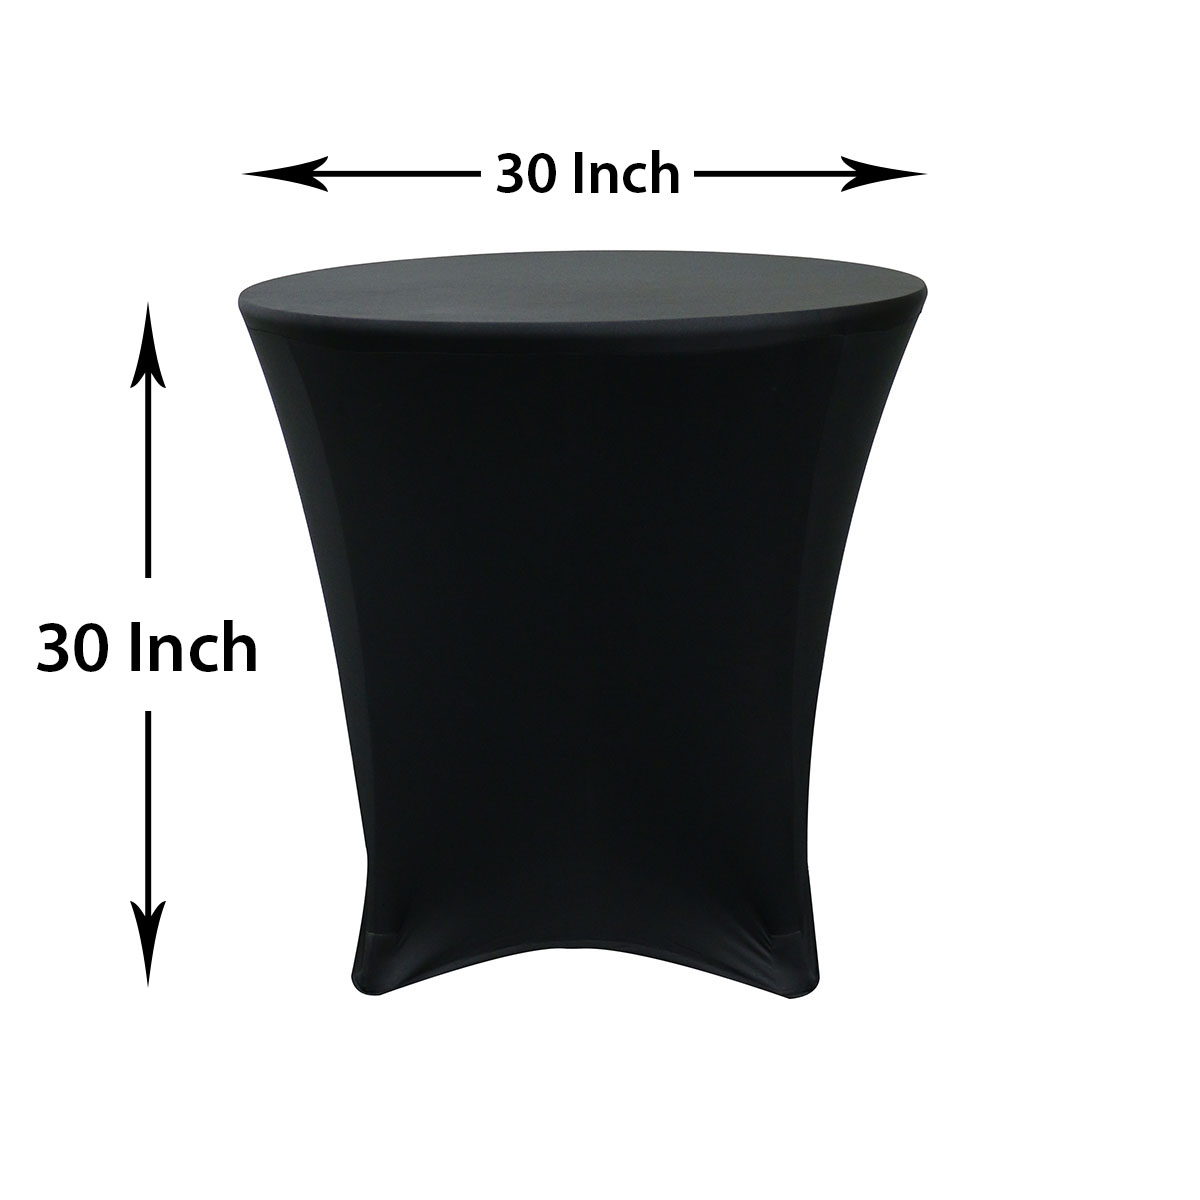 30 x 30 inch round spandex highboy cocktail table covers for Cocktail tables measurements